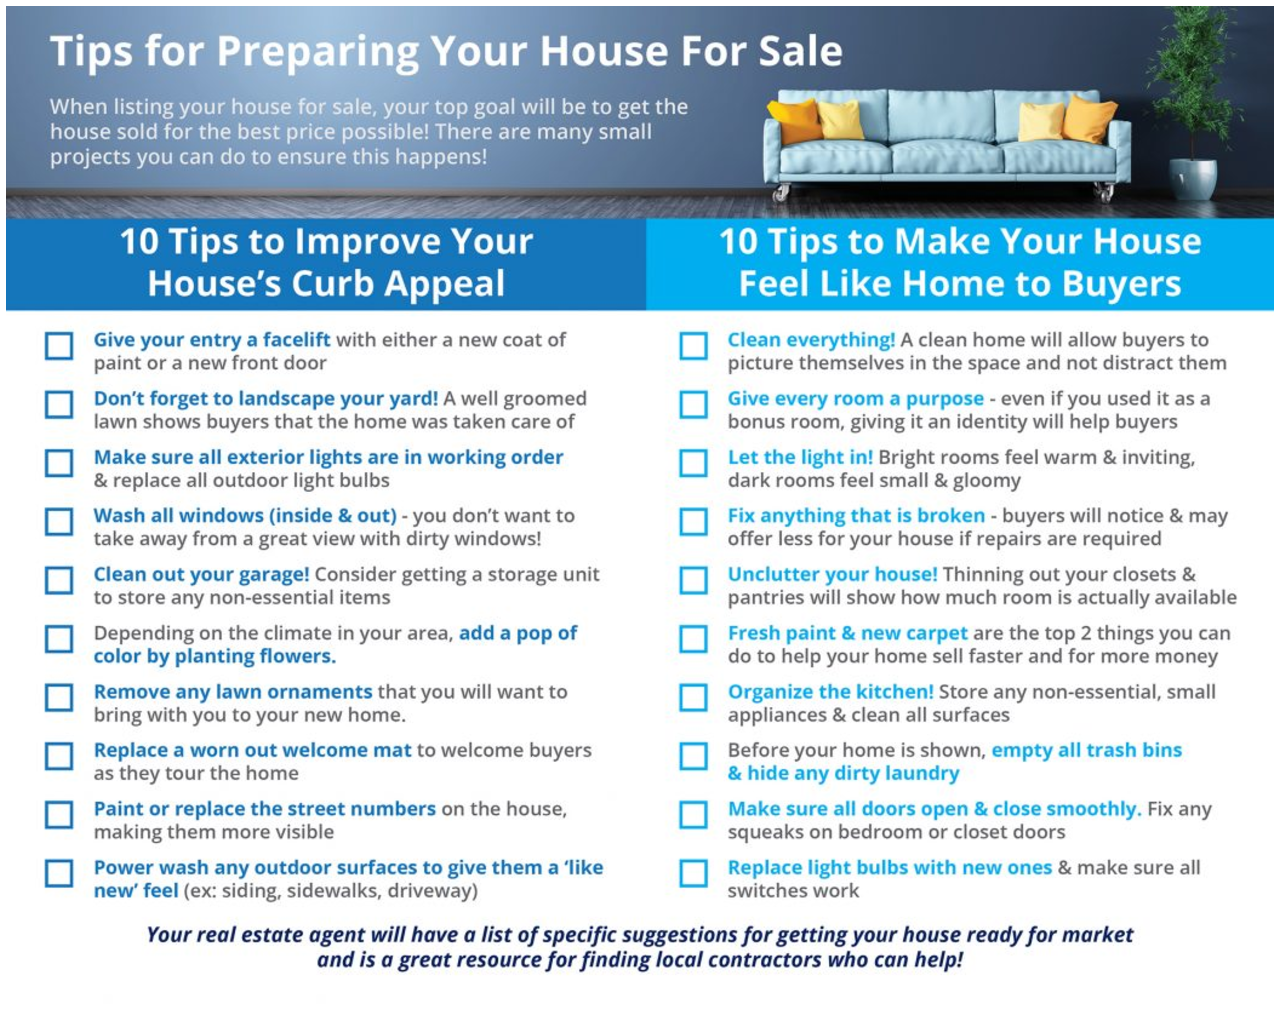 20 Simple Tips for Preparing Your House For Sale [INFOGRAPHIC]